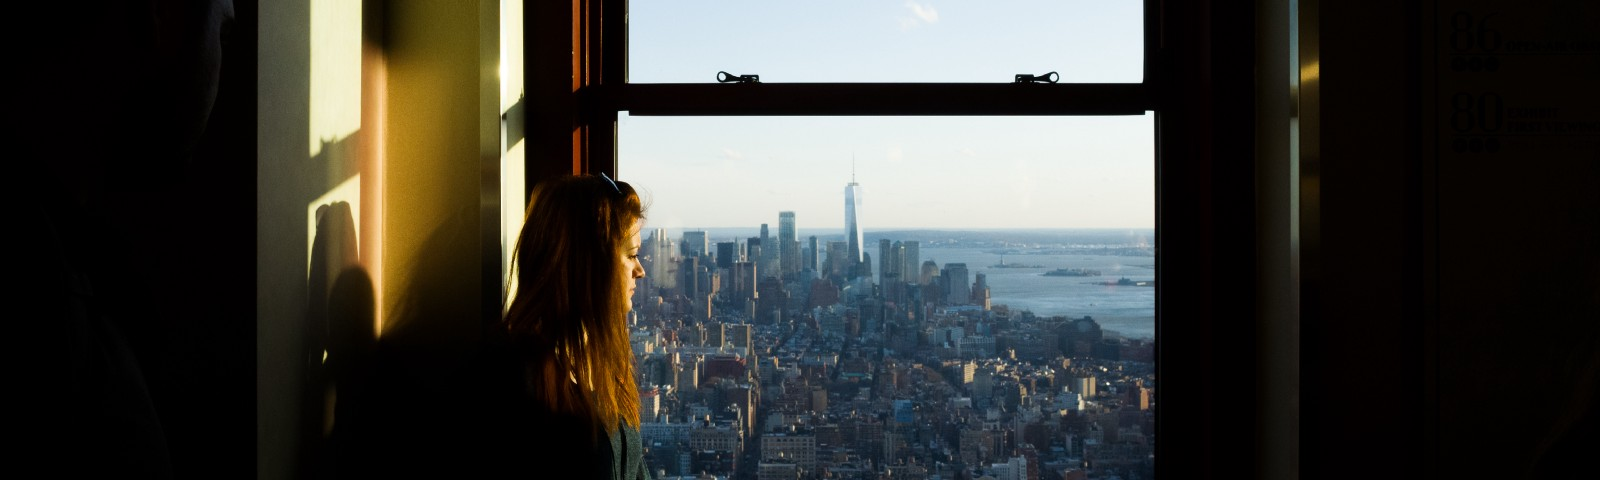 Woman looking out of window onto cityscape